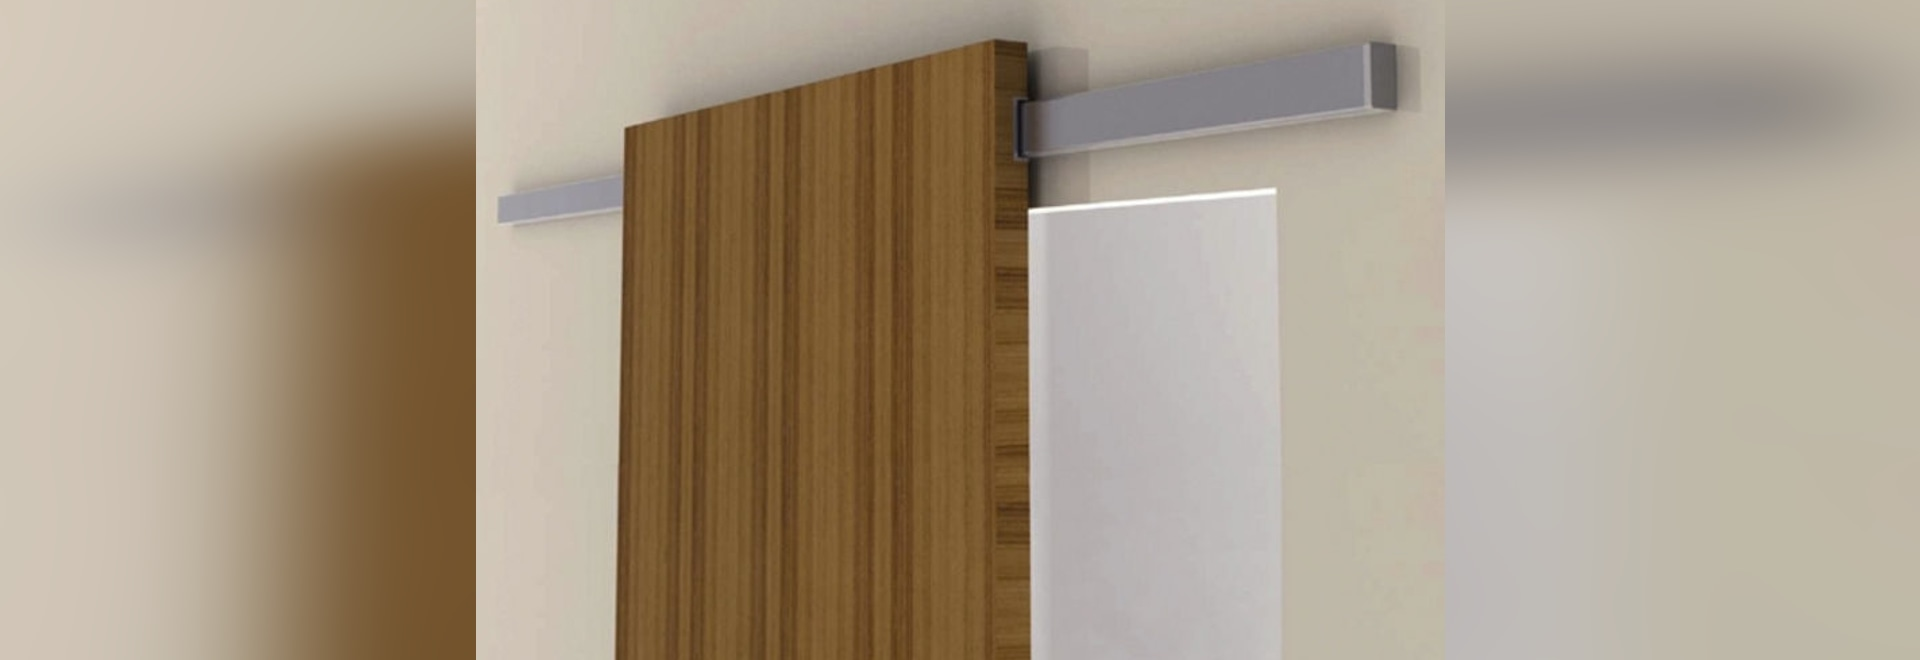 NEW: Wood Sliding Door System By Argent Alu